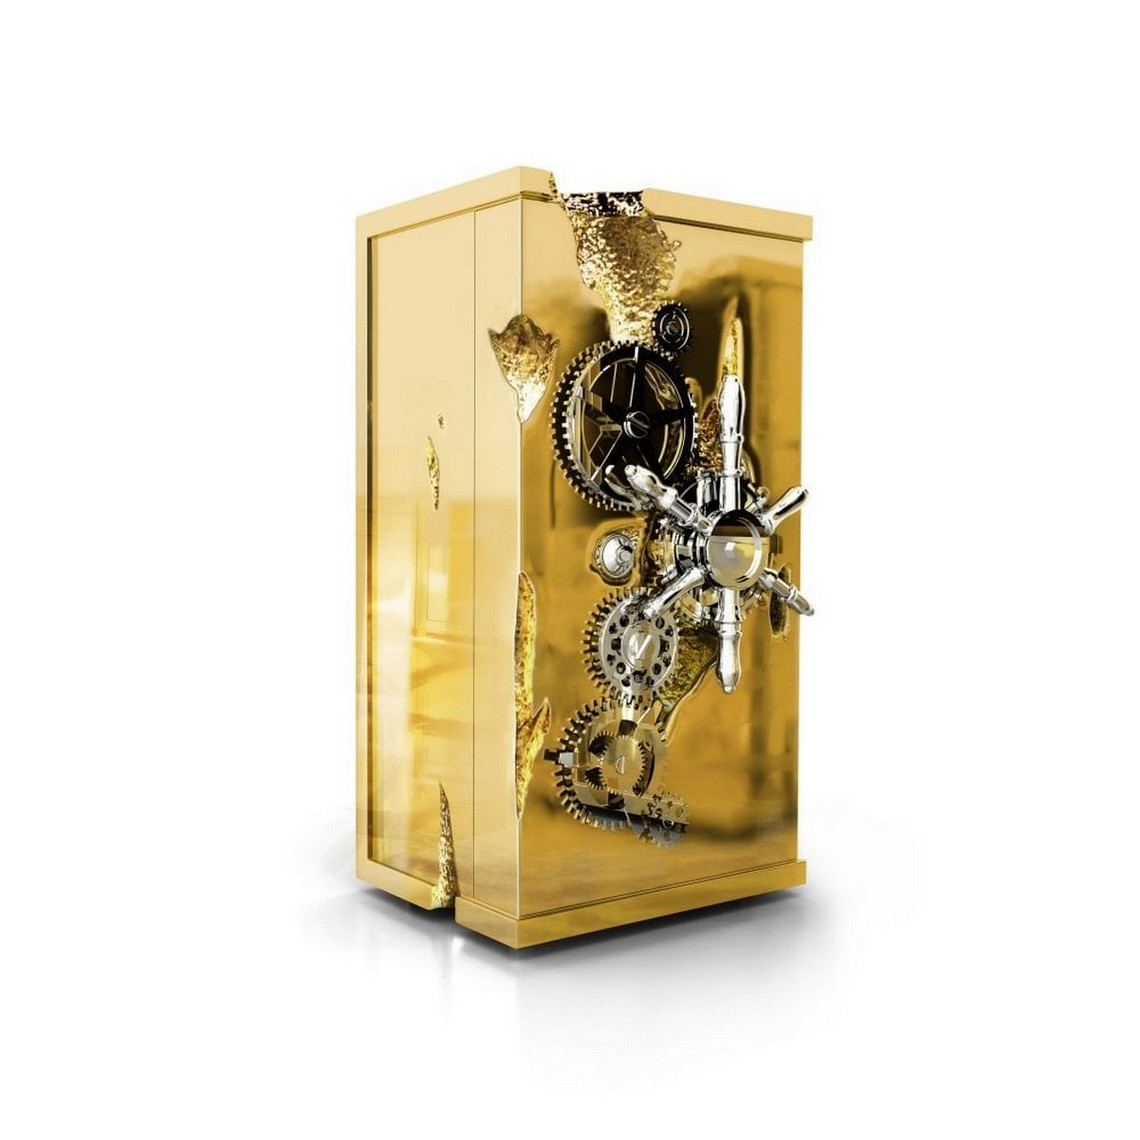 Curated Design: Top Luxury Safes luxury safes Curated Design: Top Luxury Safes millionair2